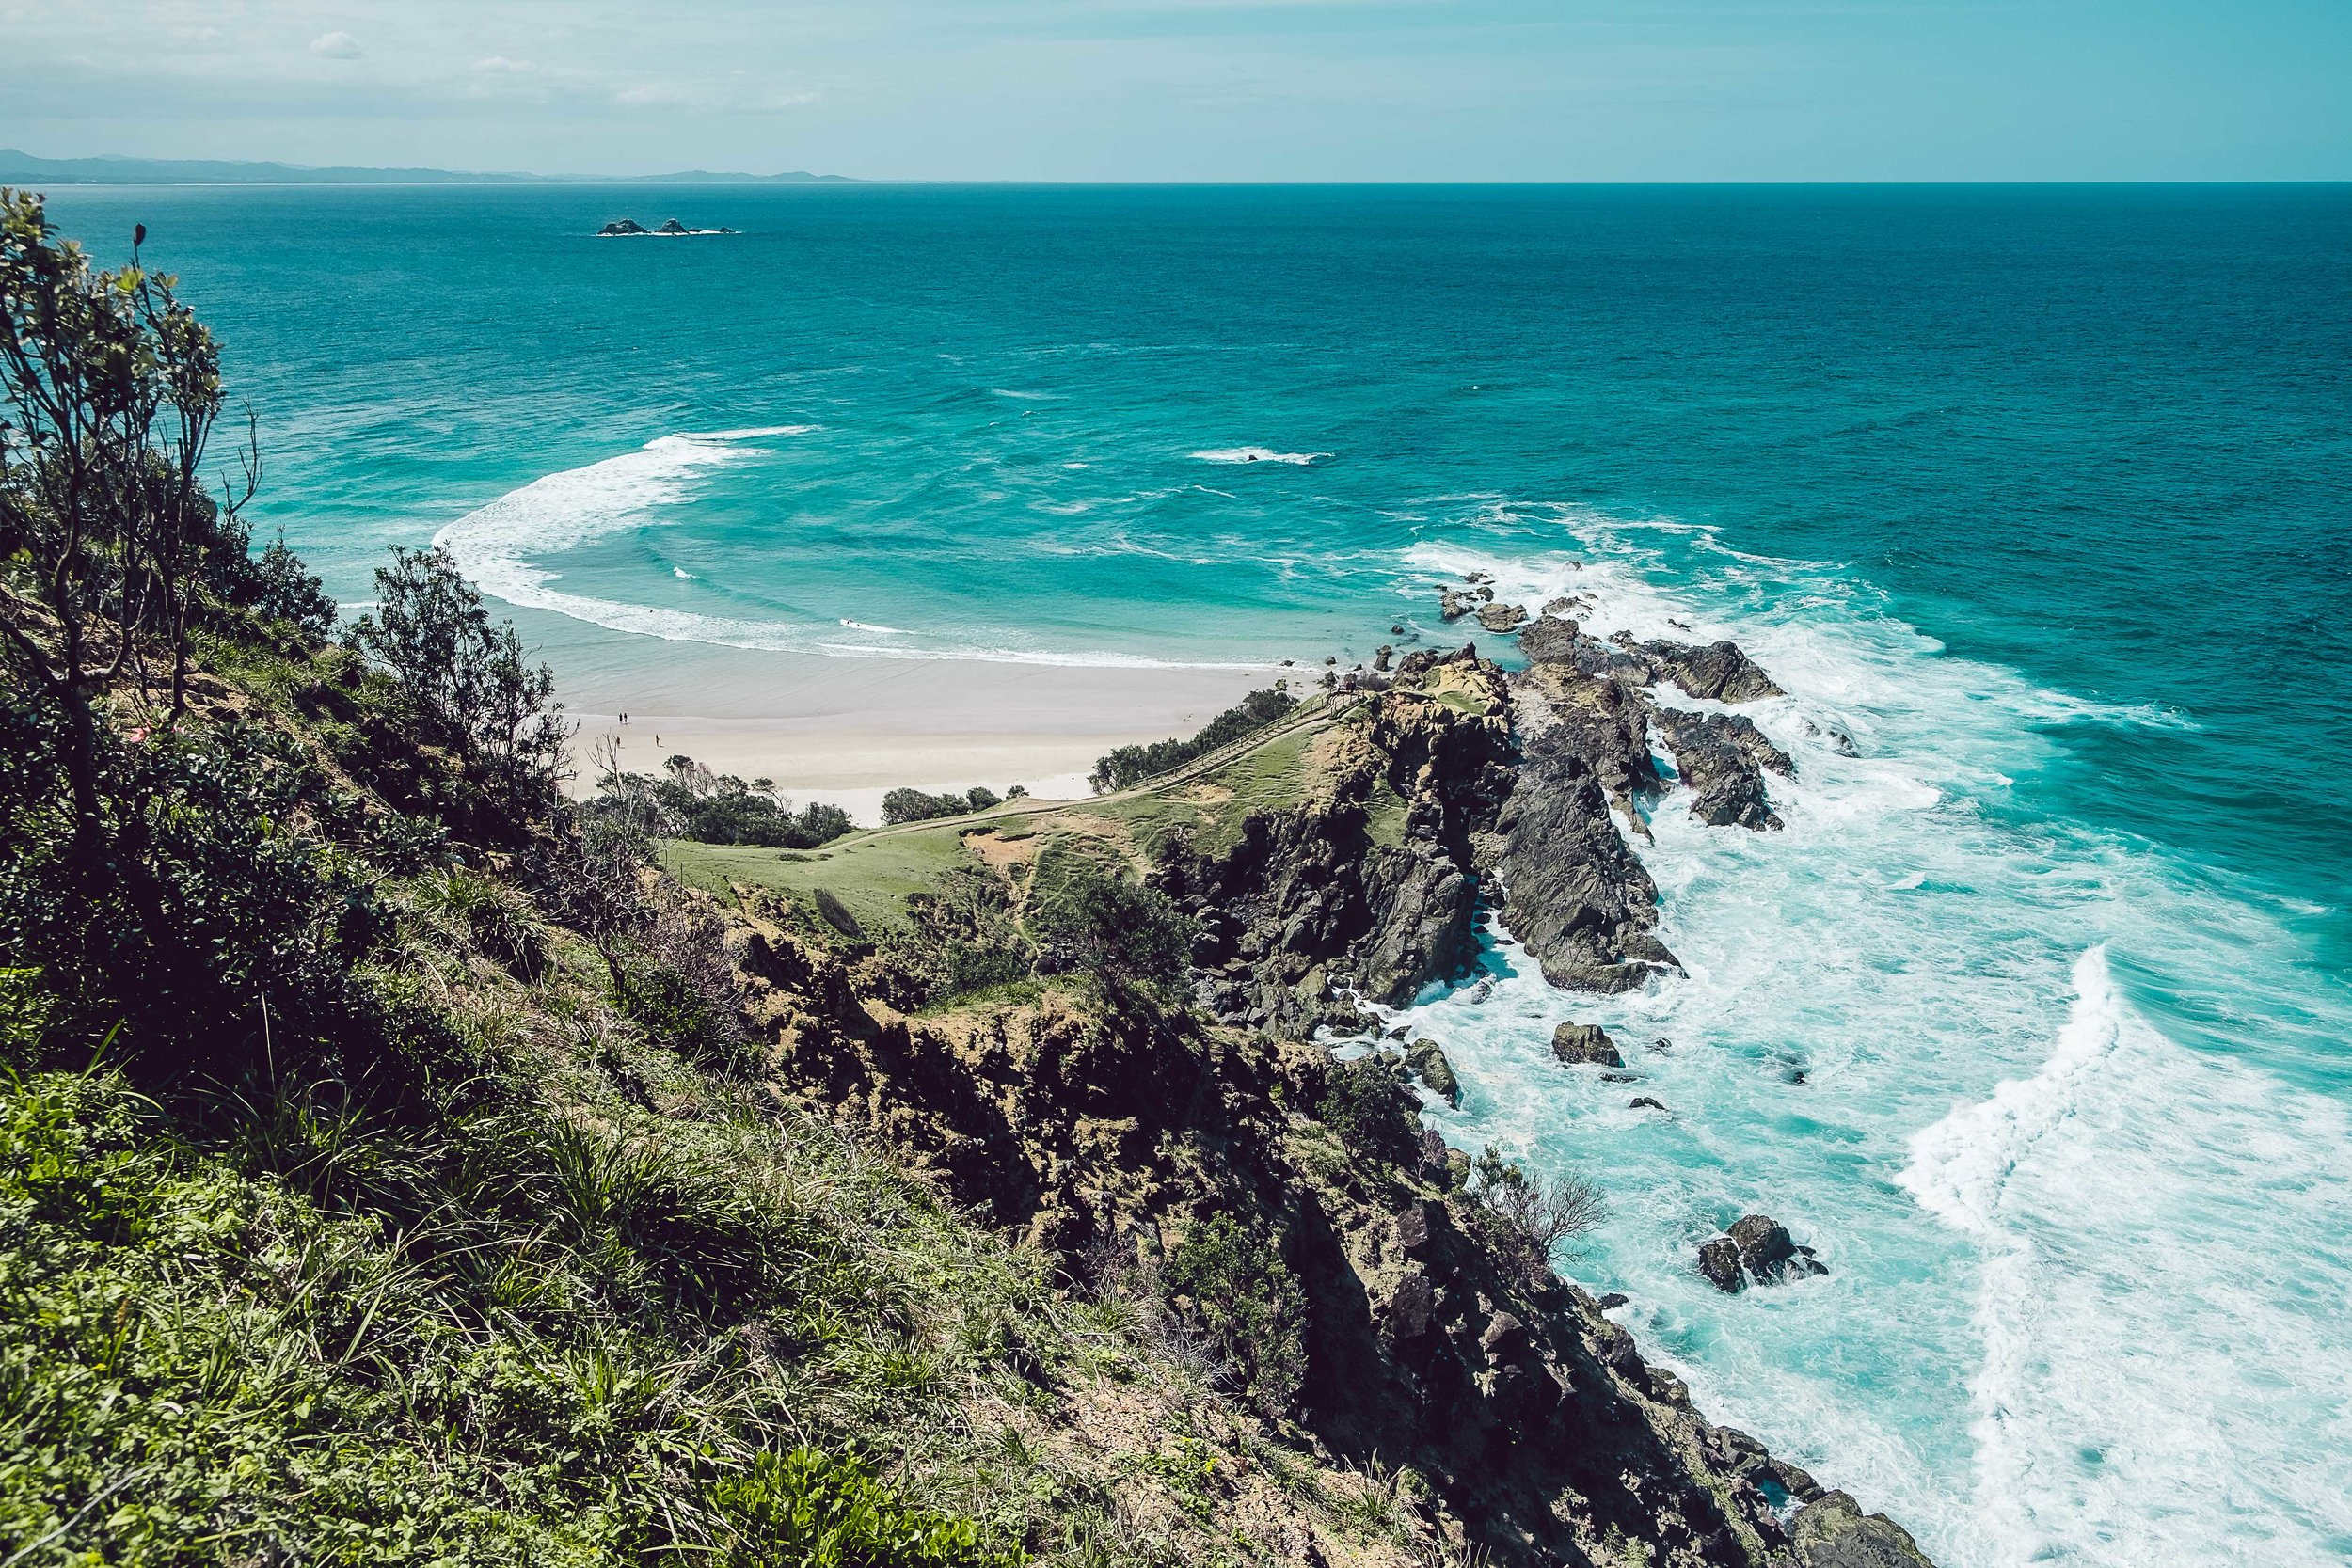 Rachel Off Duty: Byron Bay - 1 Day - Australia's Most Easterly Point